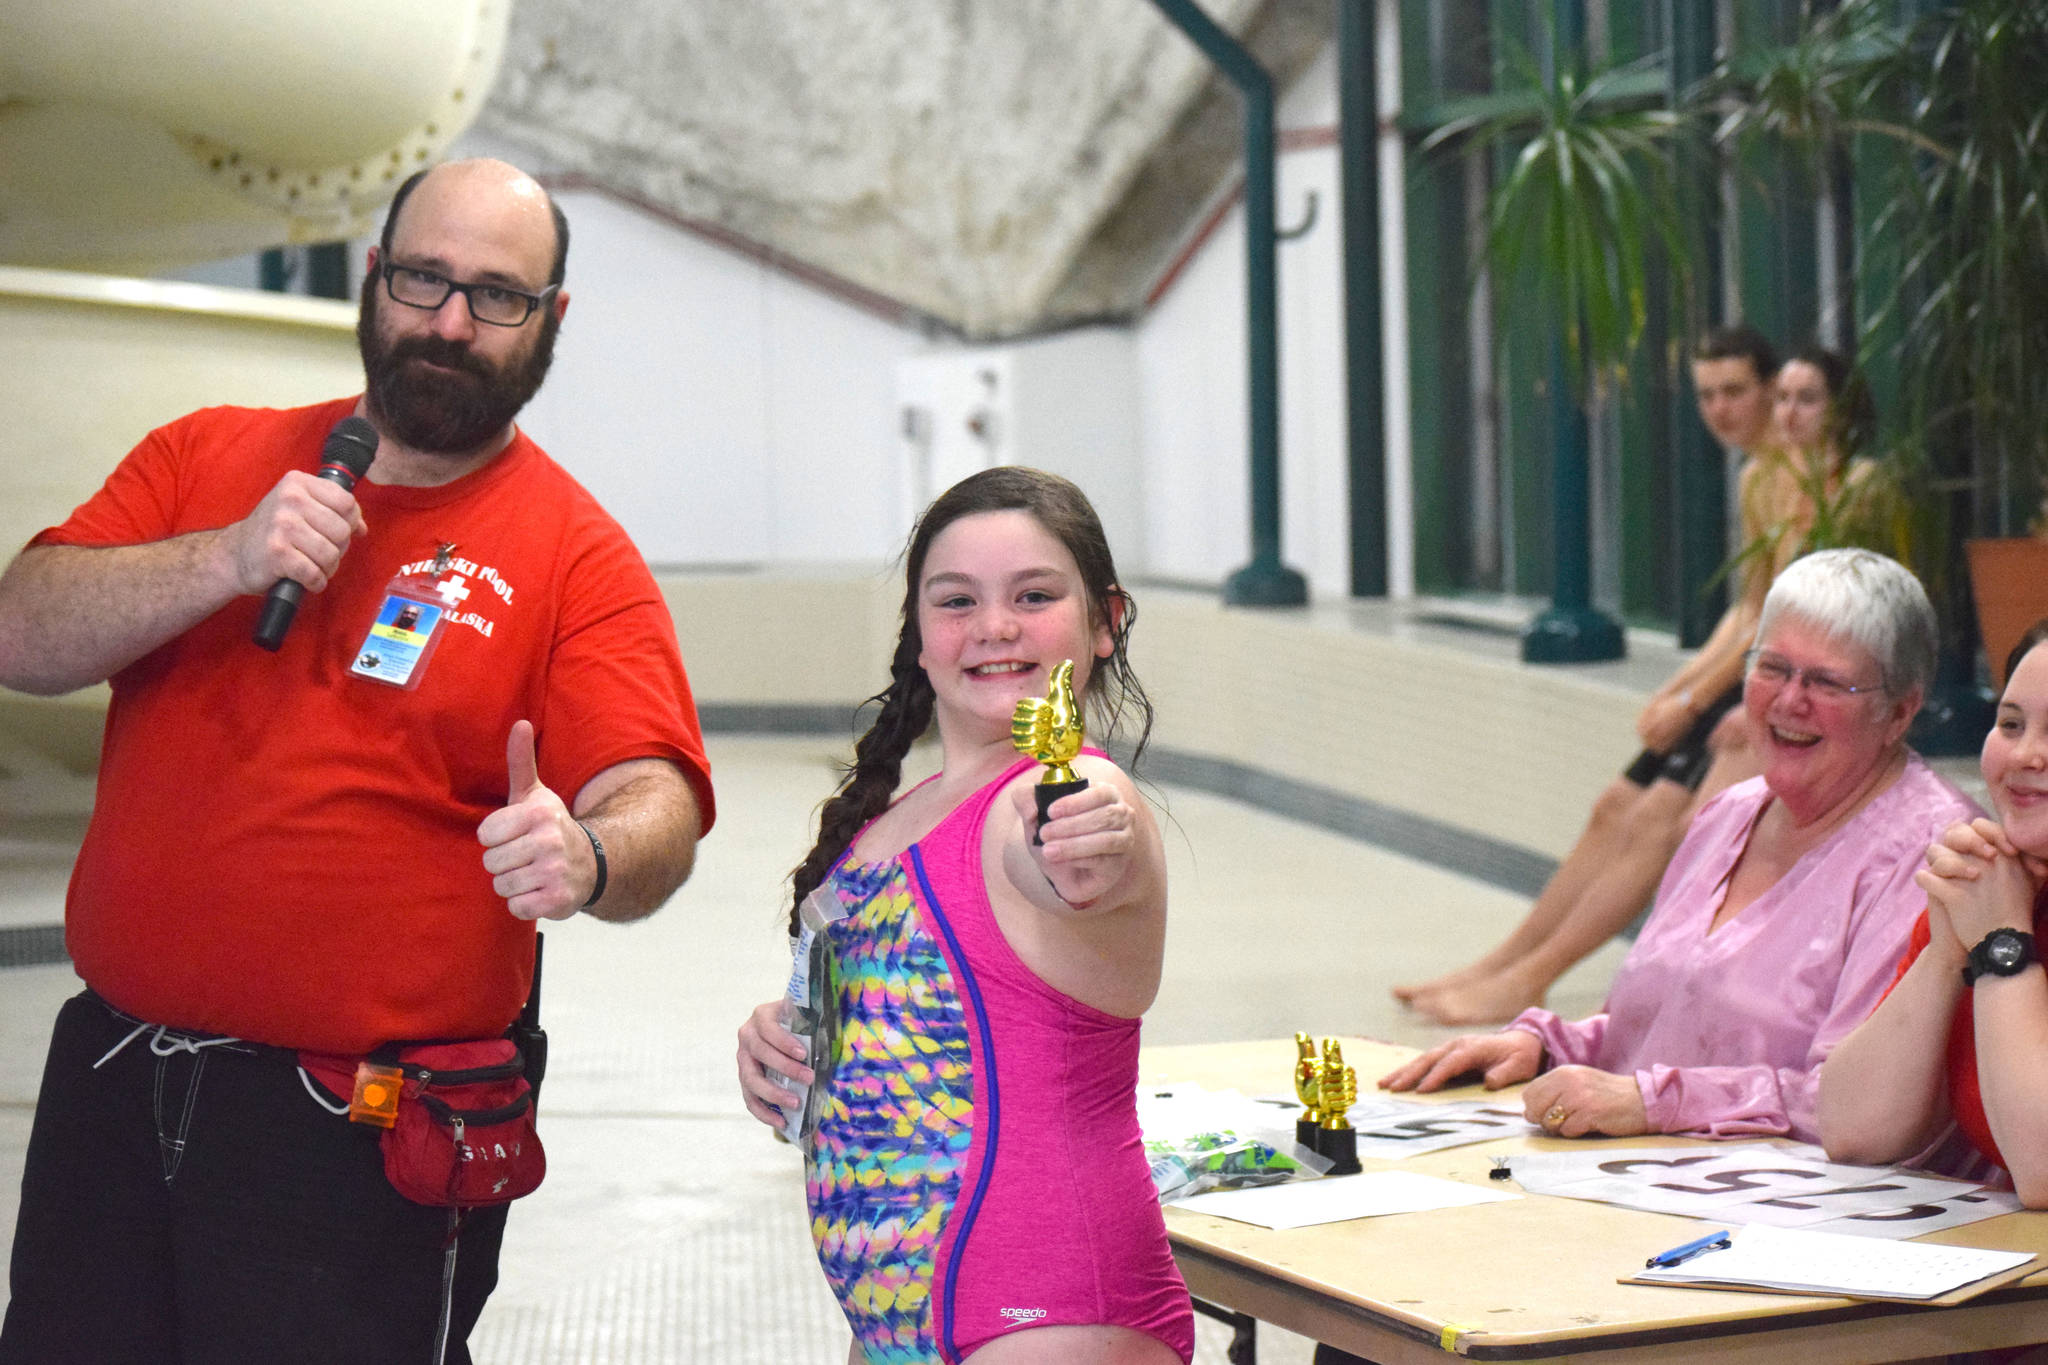 One of the winners of the cannonball contest at the Nikiski Pool poses with her trophy on Thursday, Jan. 17, 2019. (Photo by Brian Mazurek/Peninsula Clarion)